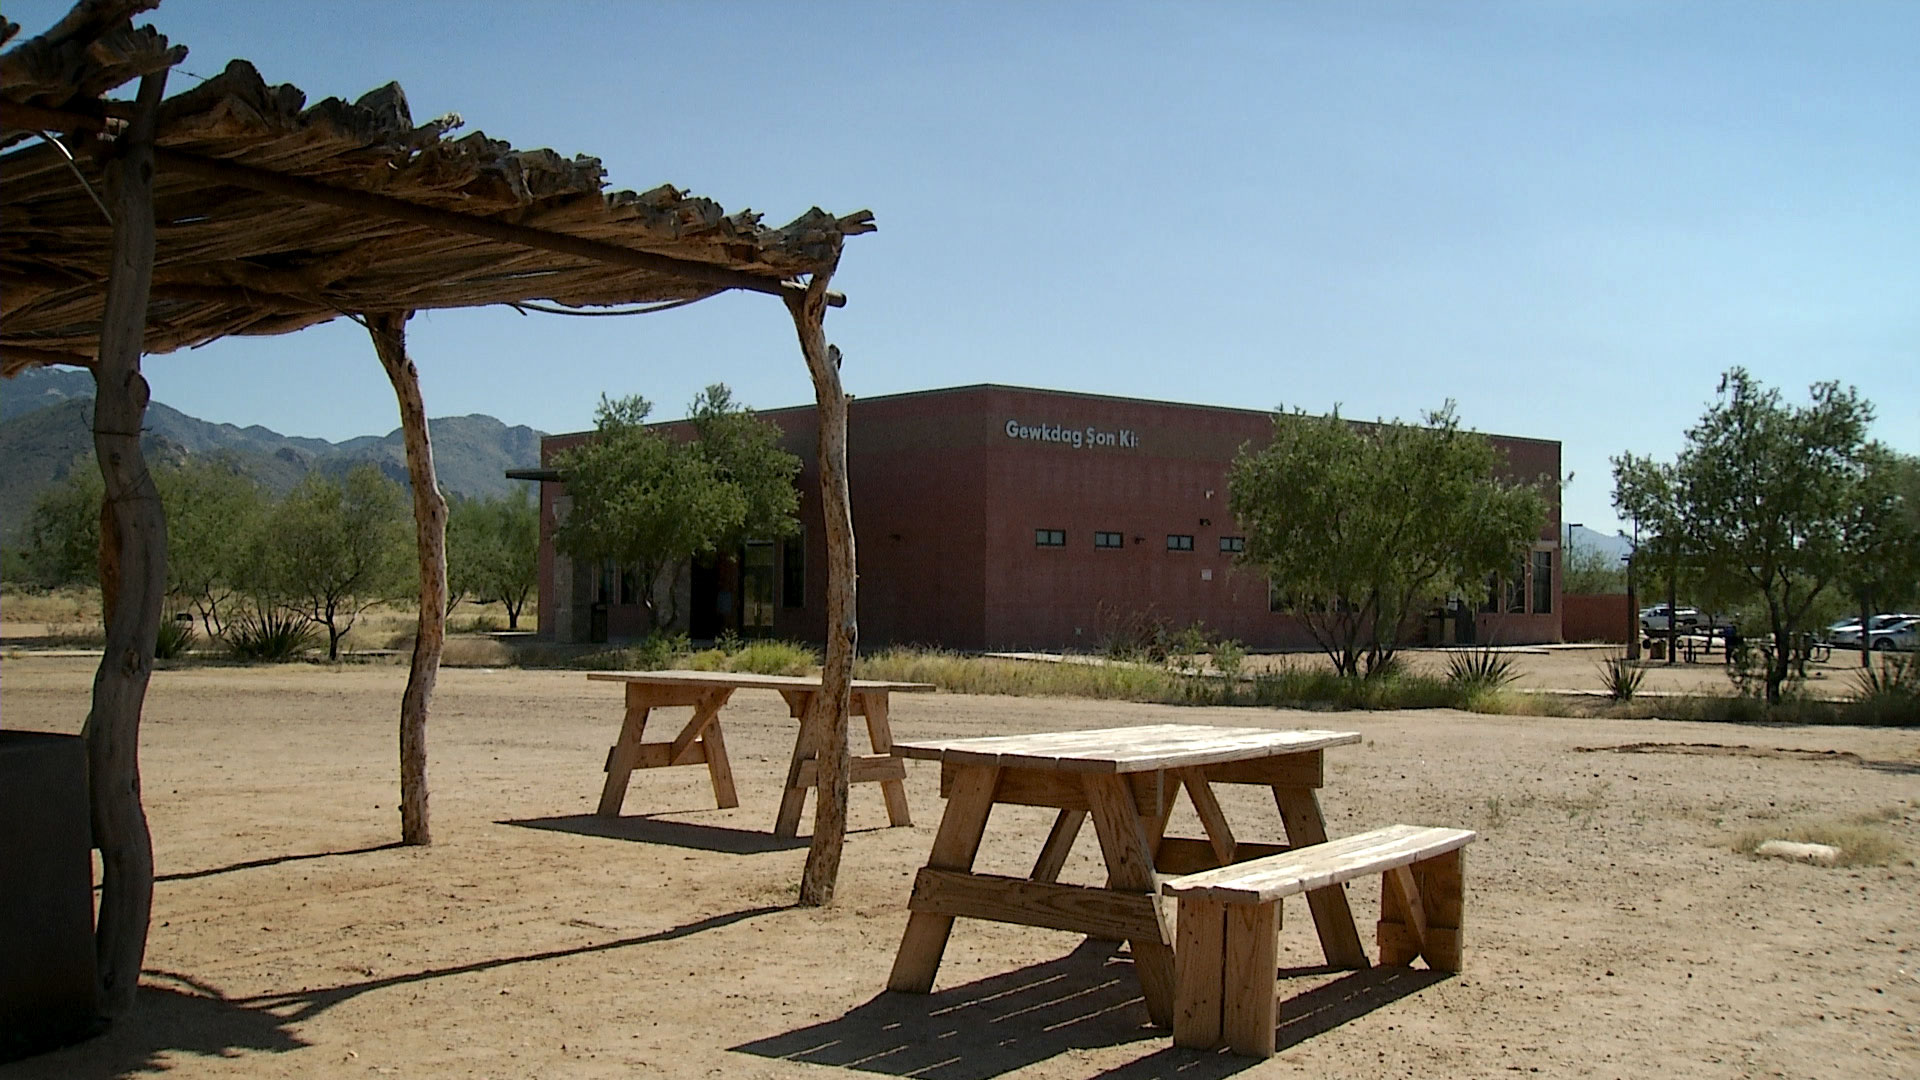 The Tohono O'Odham Community College's main campus outside of Sells, Arizona.